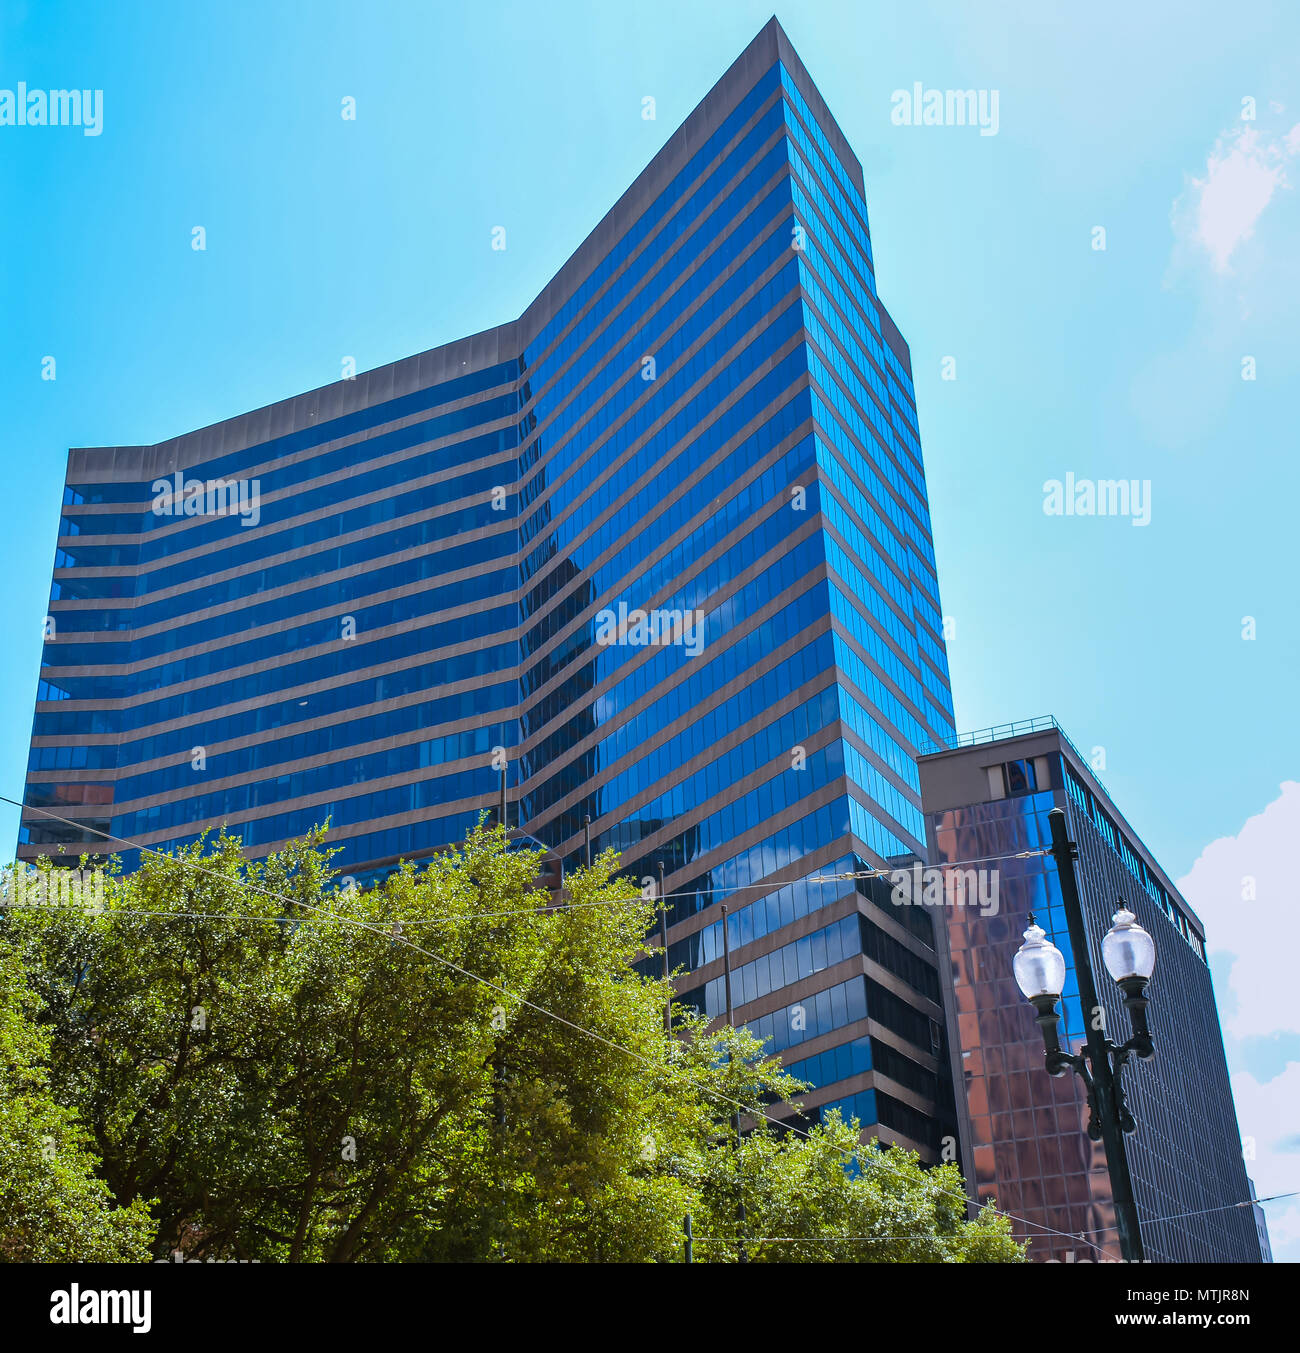 New Orleans, LA - Sep. 24, 2017: Poydras Center - it is a sleek, angular glass, class-A office tower. - Stock Image